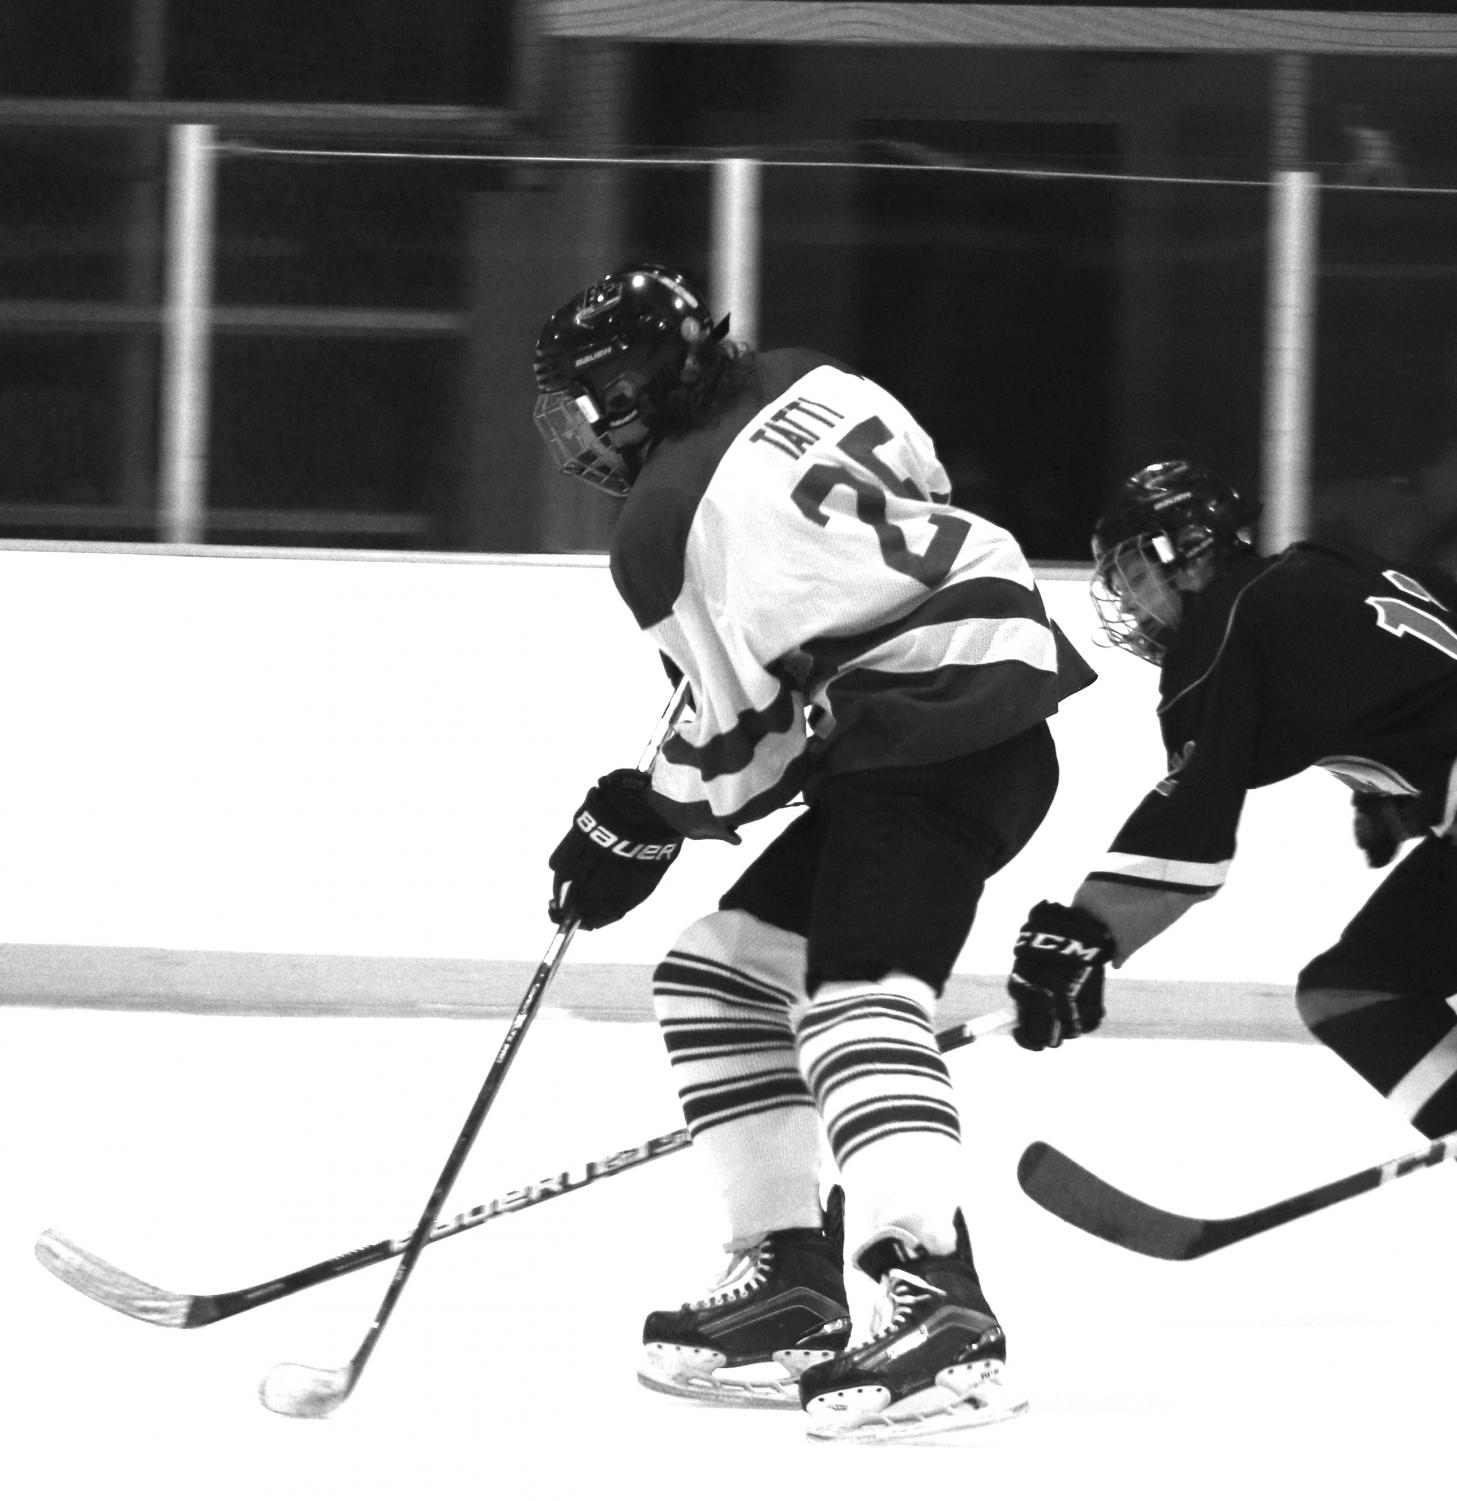 Junior Finn Tatti advances the puck in a game against Manhasset on Jan. 15. The Vikings won that game with a score 3-2.